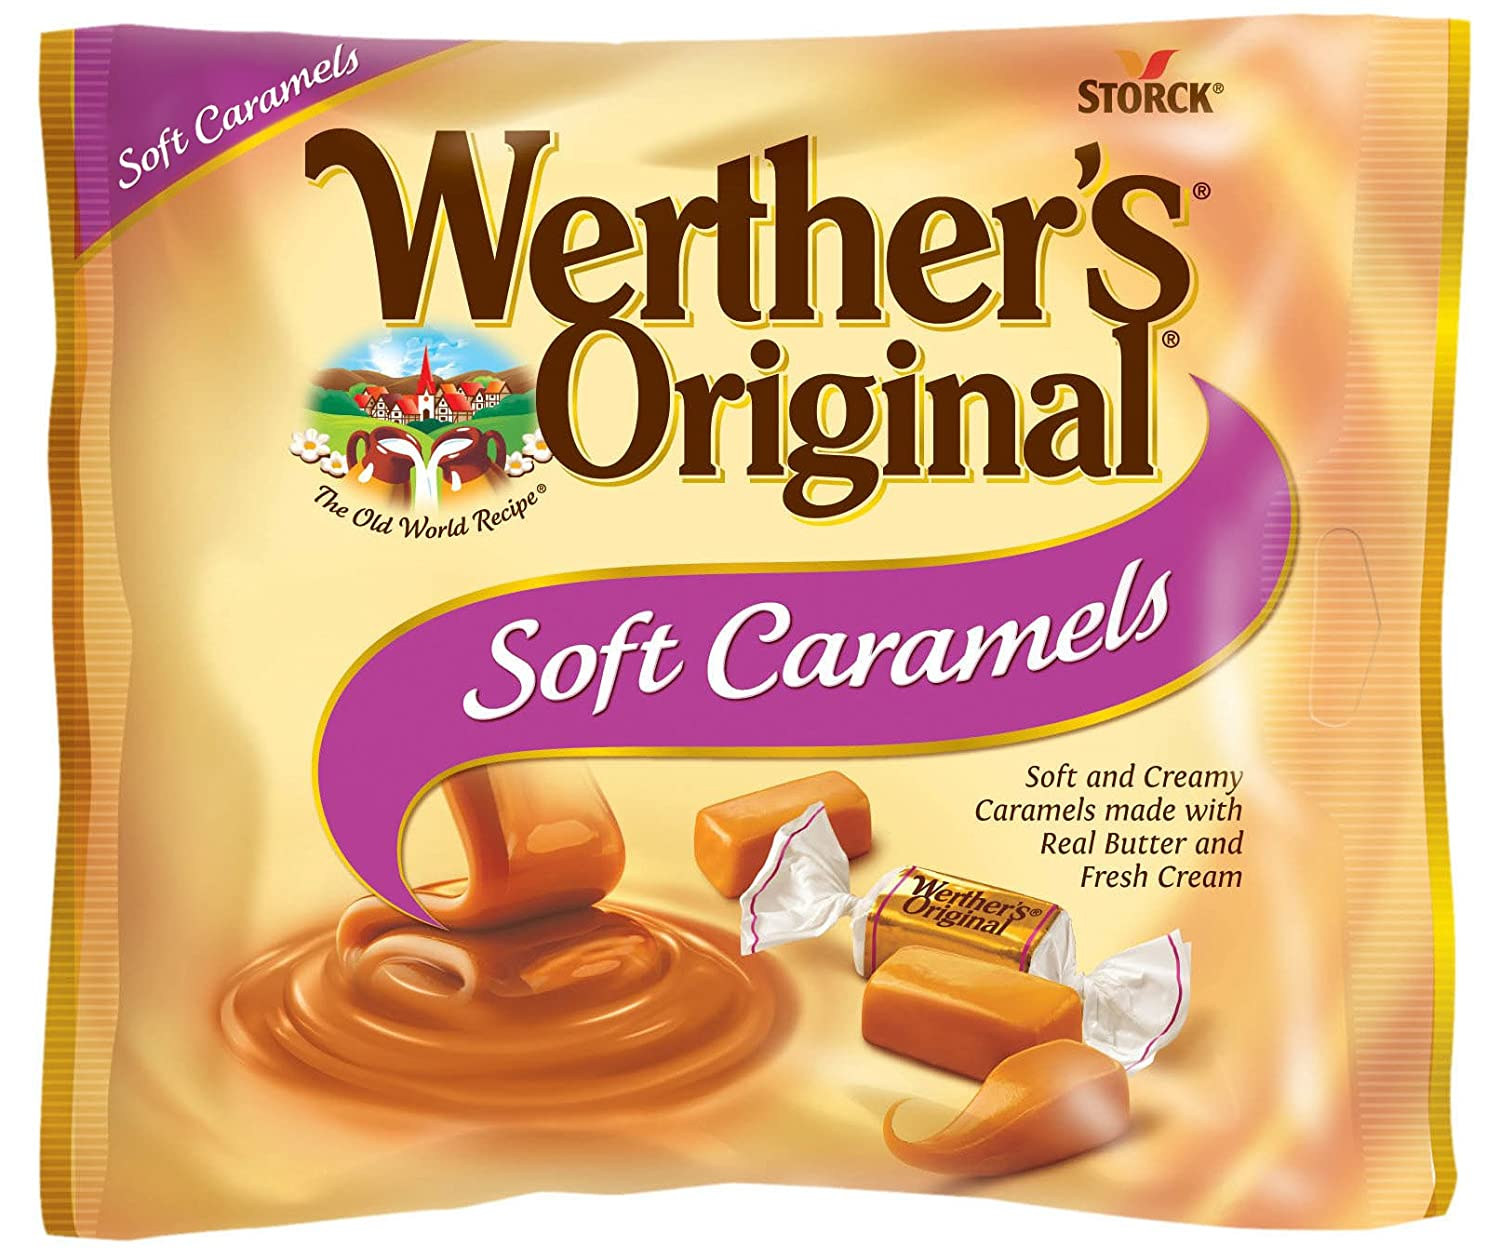 WERTHER'S ORIGINAL Soft Caramels, 8 10 Ounce Bag, Individually Wrapped  Candy Caramels,